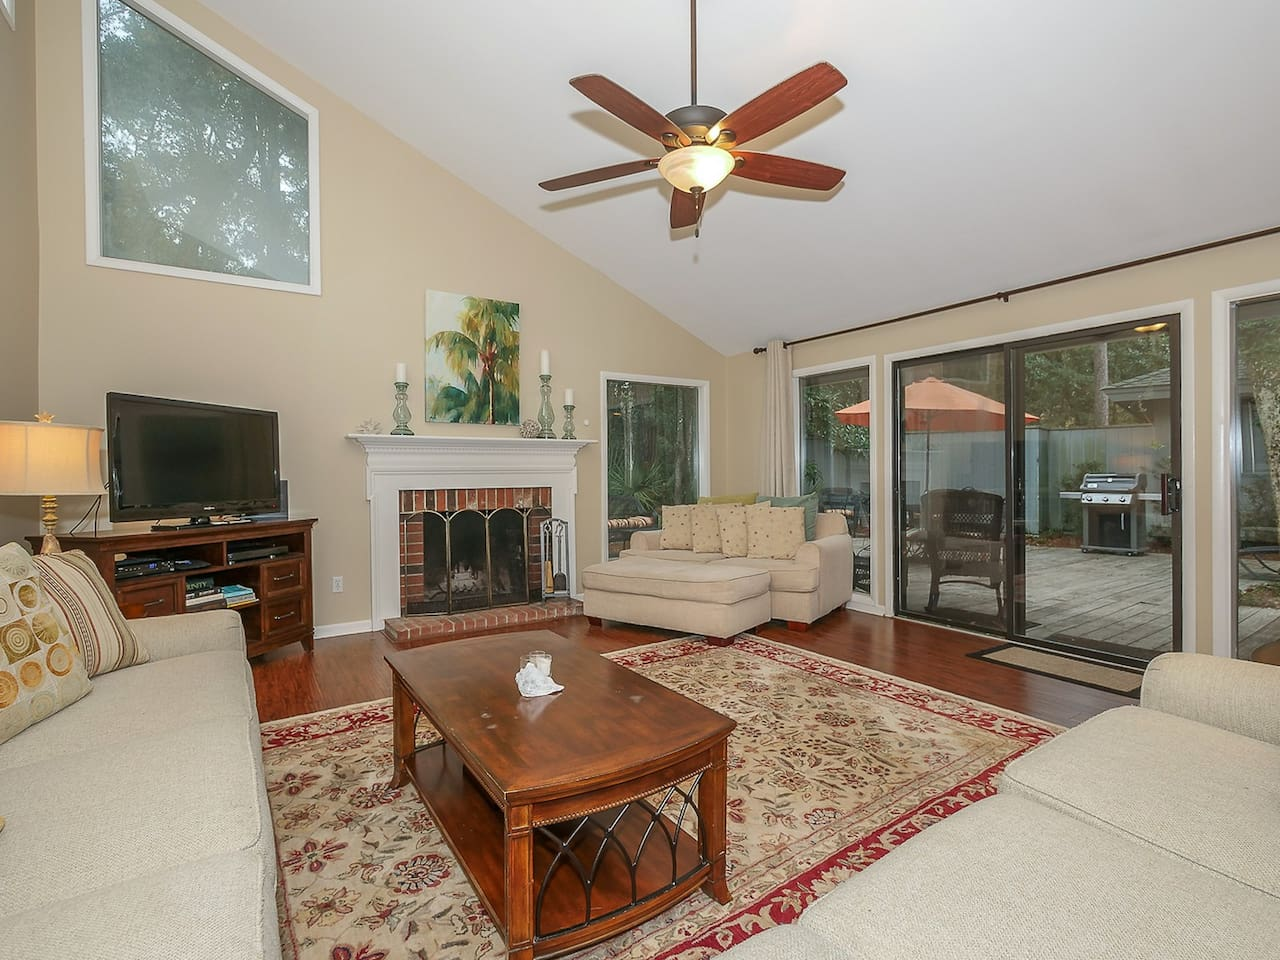 3 Sweet Gum Court in Sea Pines Plantation